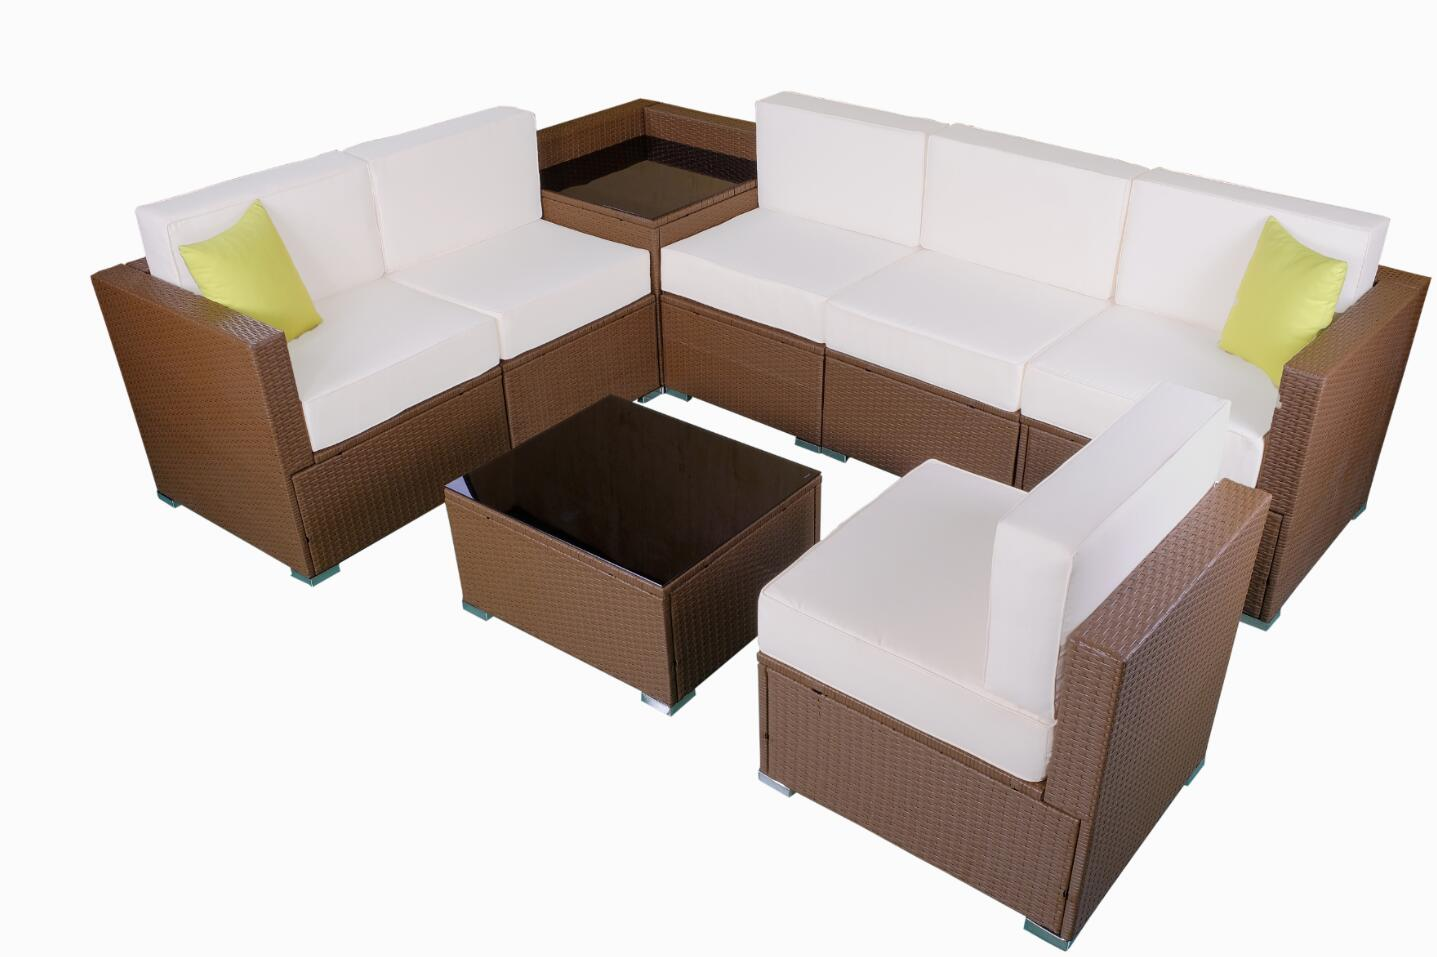 Mcombo Patio Furniture Sectional Sets Wicker Rattan Couch Sofa Chair Luxury Size 8 Pc Cream